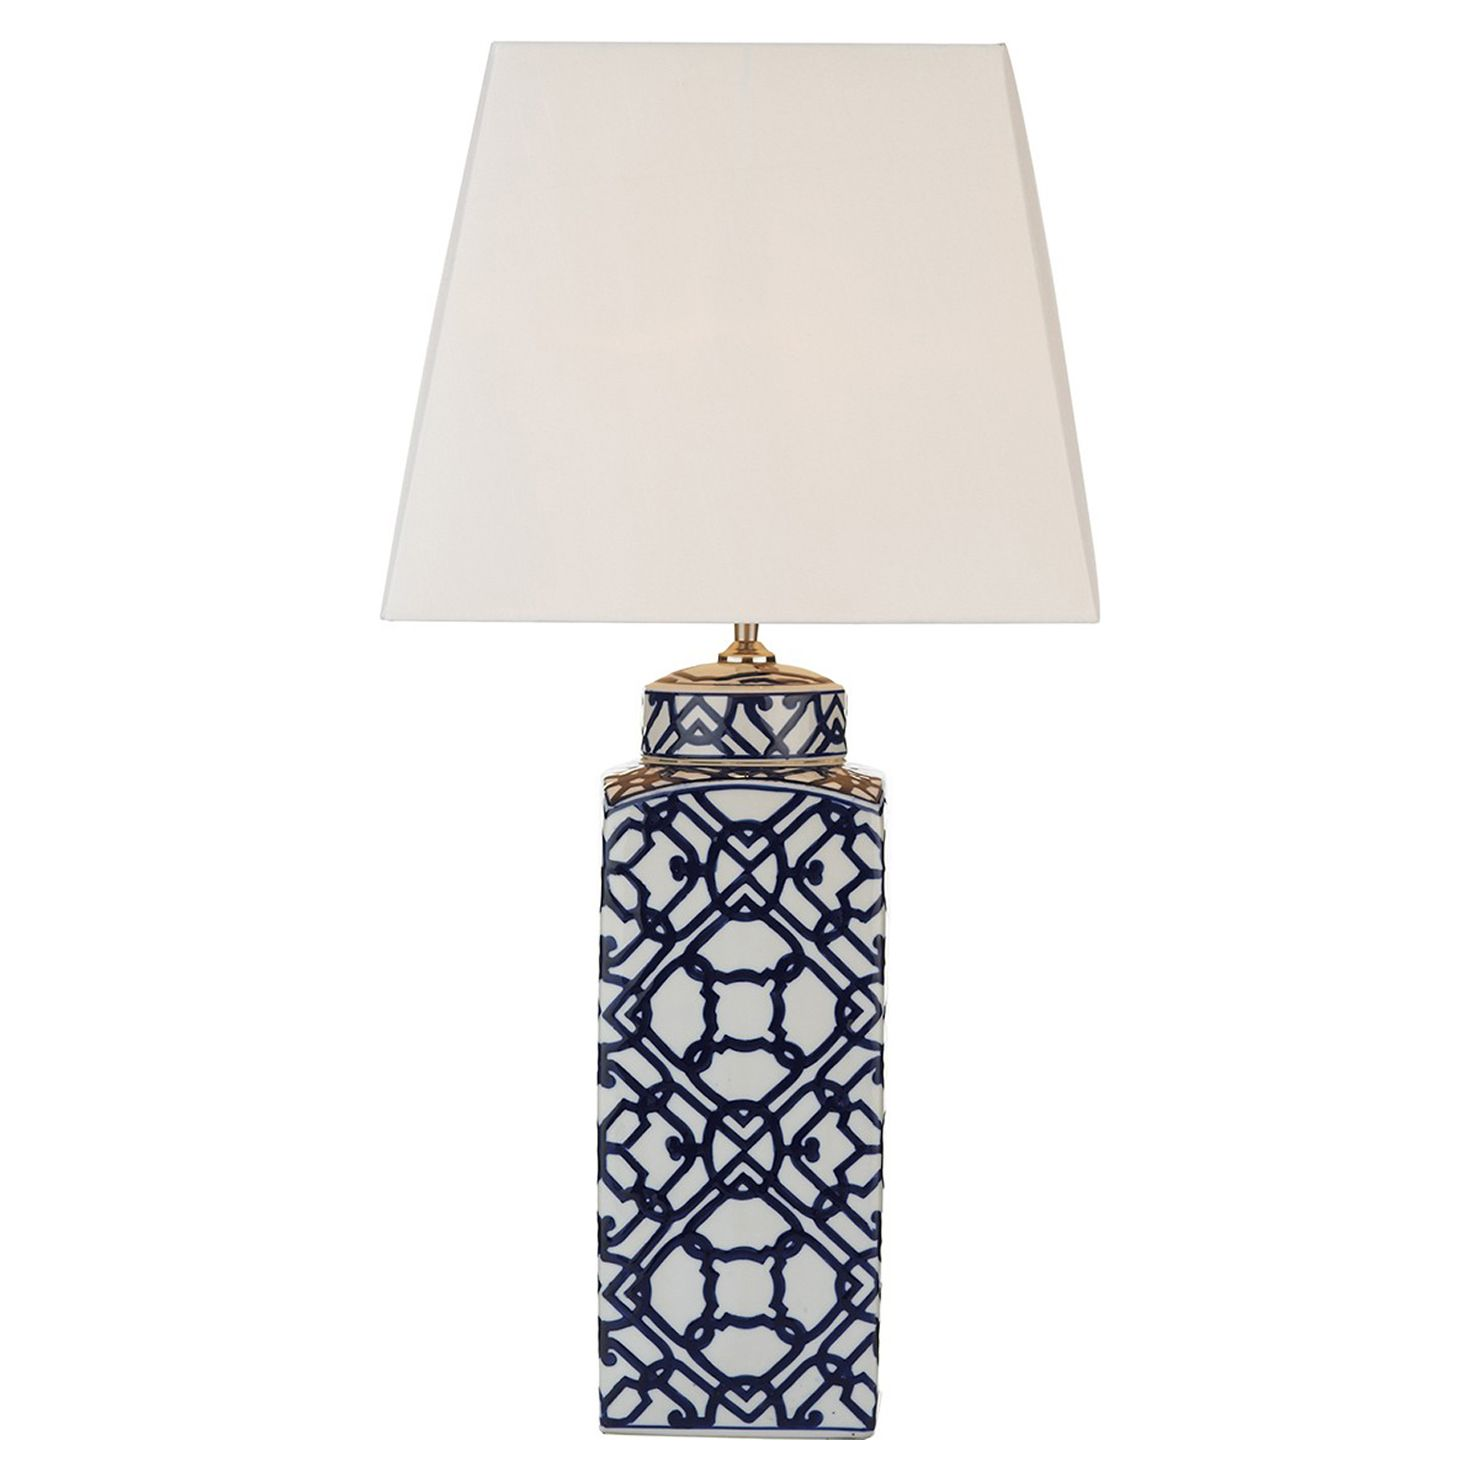 Allison ceramic lamp interiors and house dar lighting mystic single light patterned table lamp including ivory faux silk shade lighting type from castlegate lights uk geotapseo Images